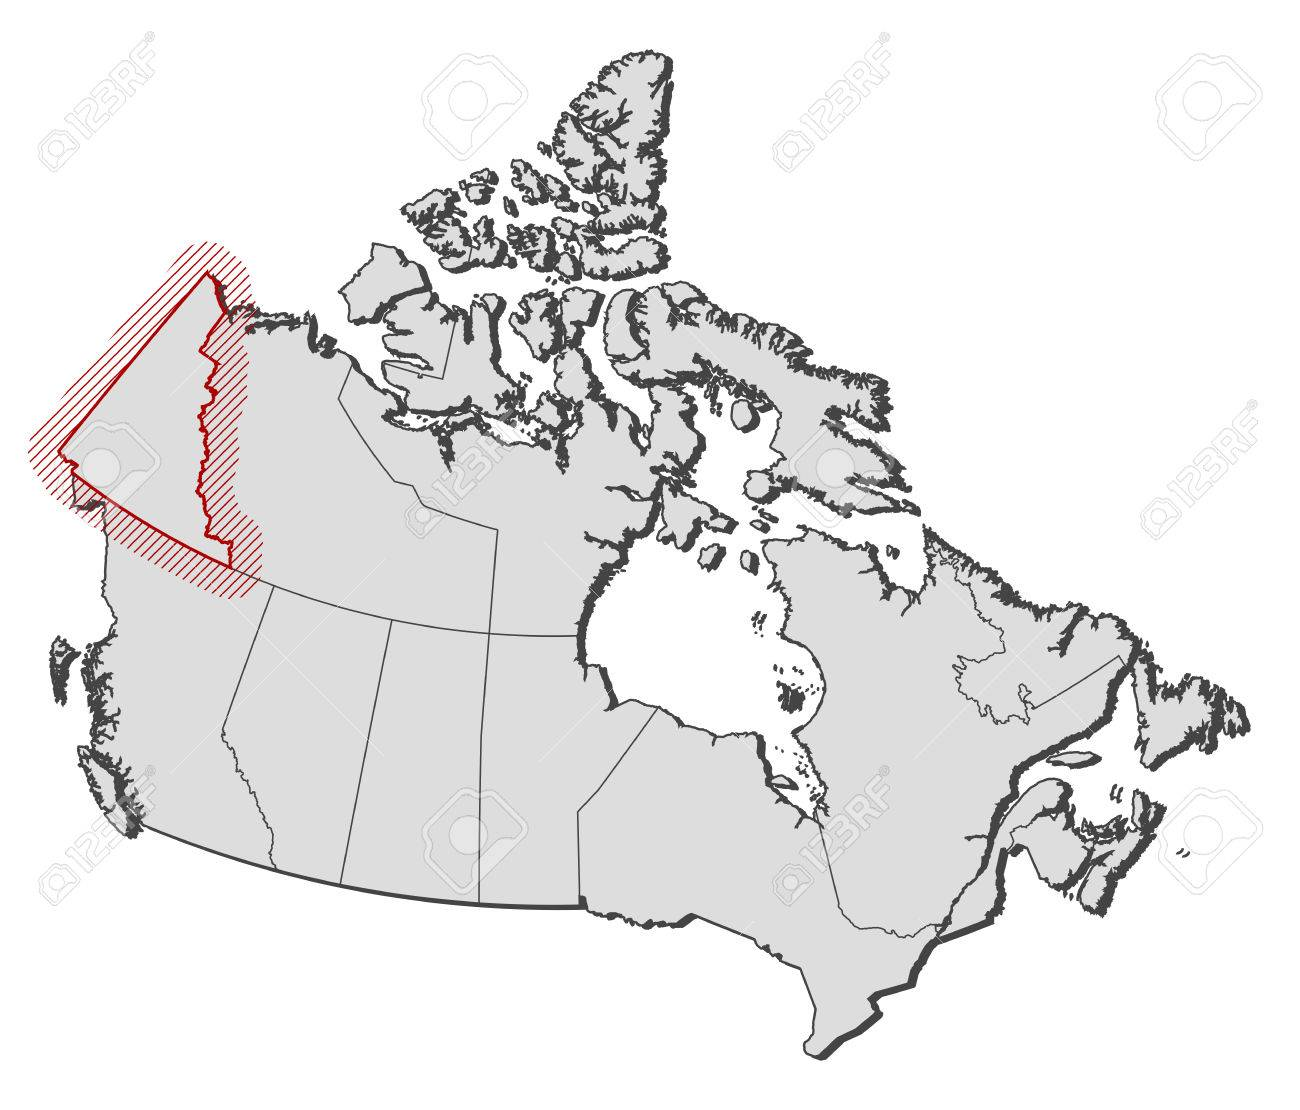 Carte Canada Yukon.Map Of Canada With The Provinces Yukon Is Highlighted By A Hatching